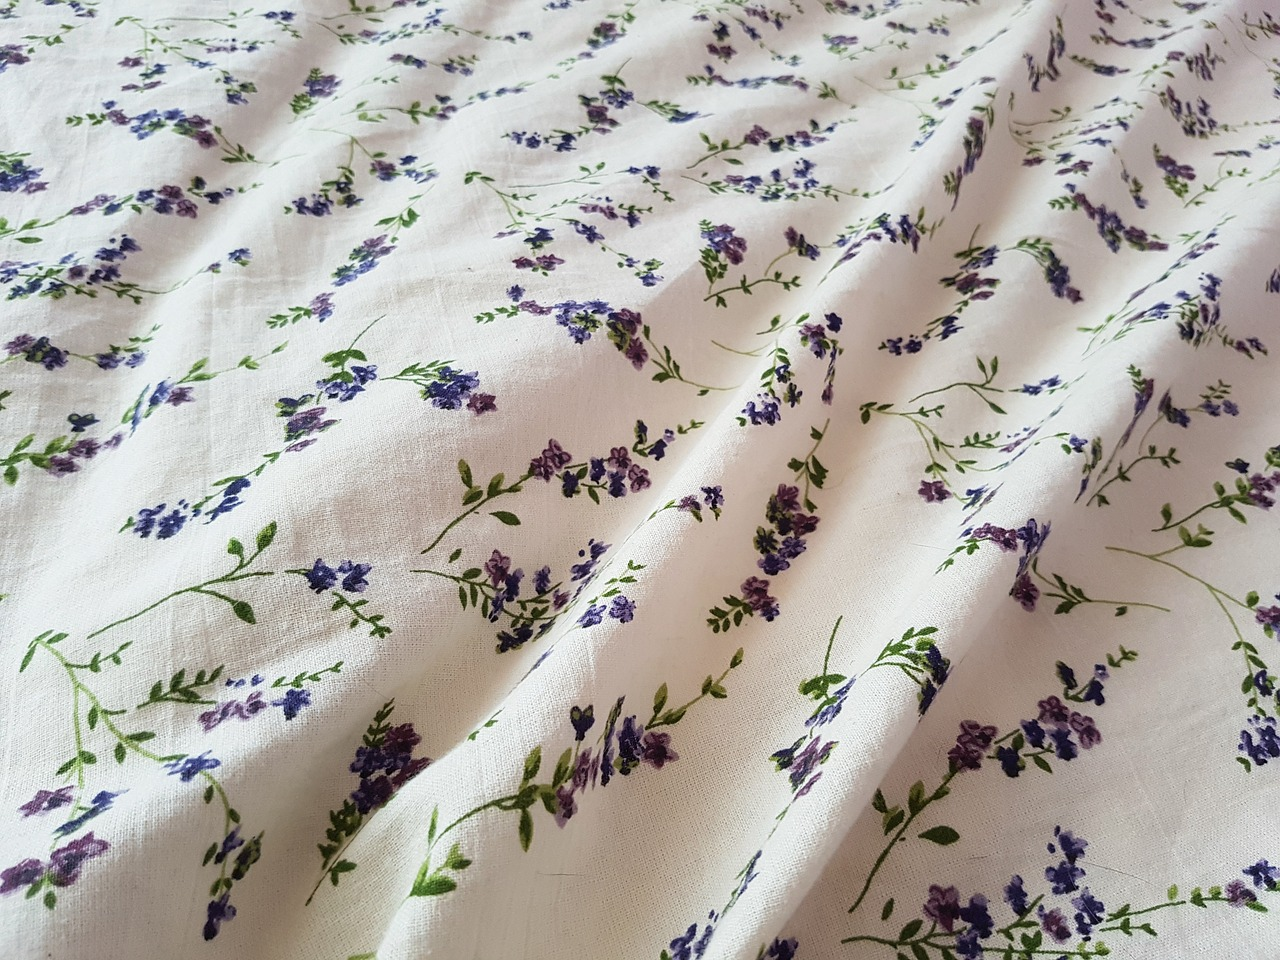 https://www.needpix.com/photo/679480/lavender-bedding-fabric-white-purple-bed-flower-floral-house